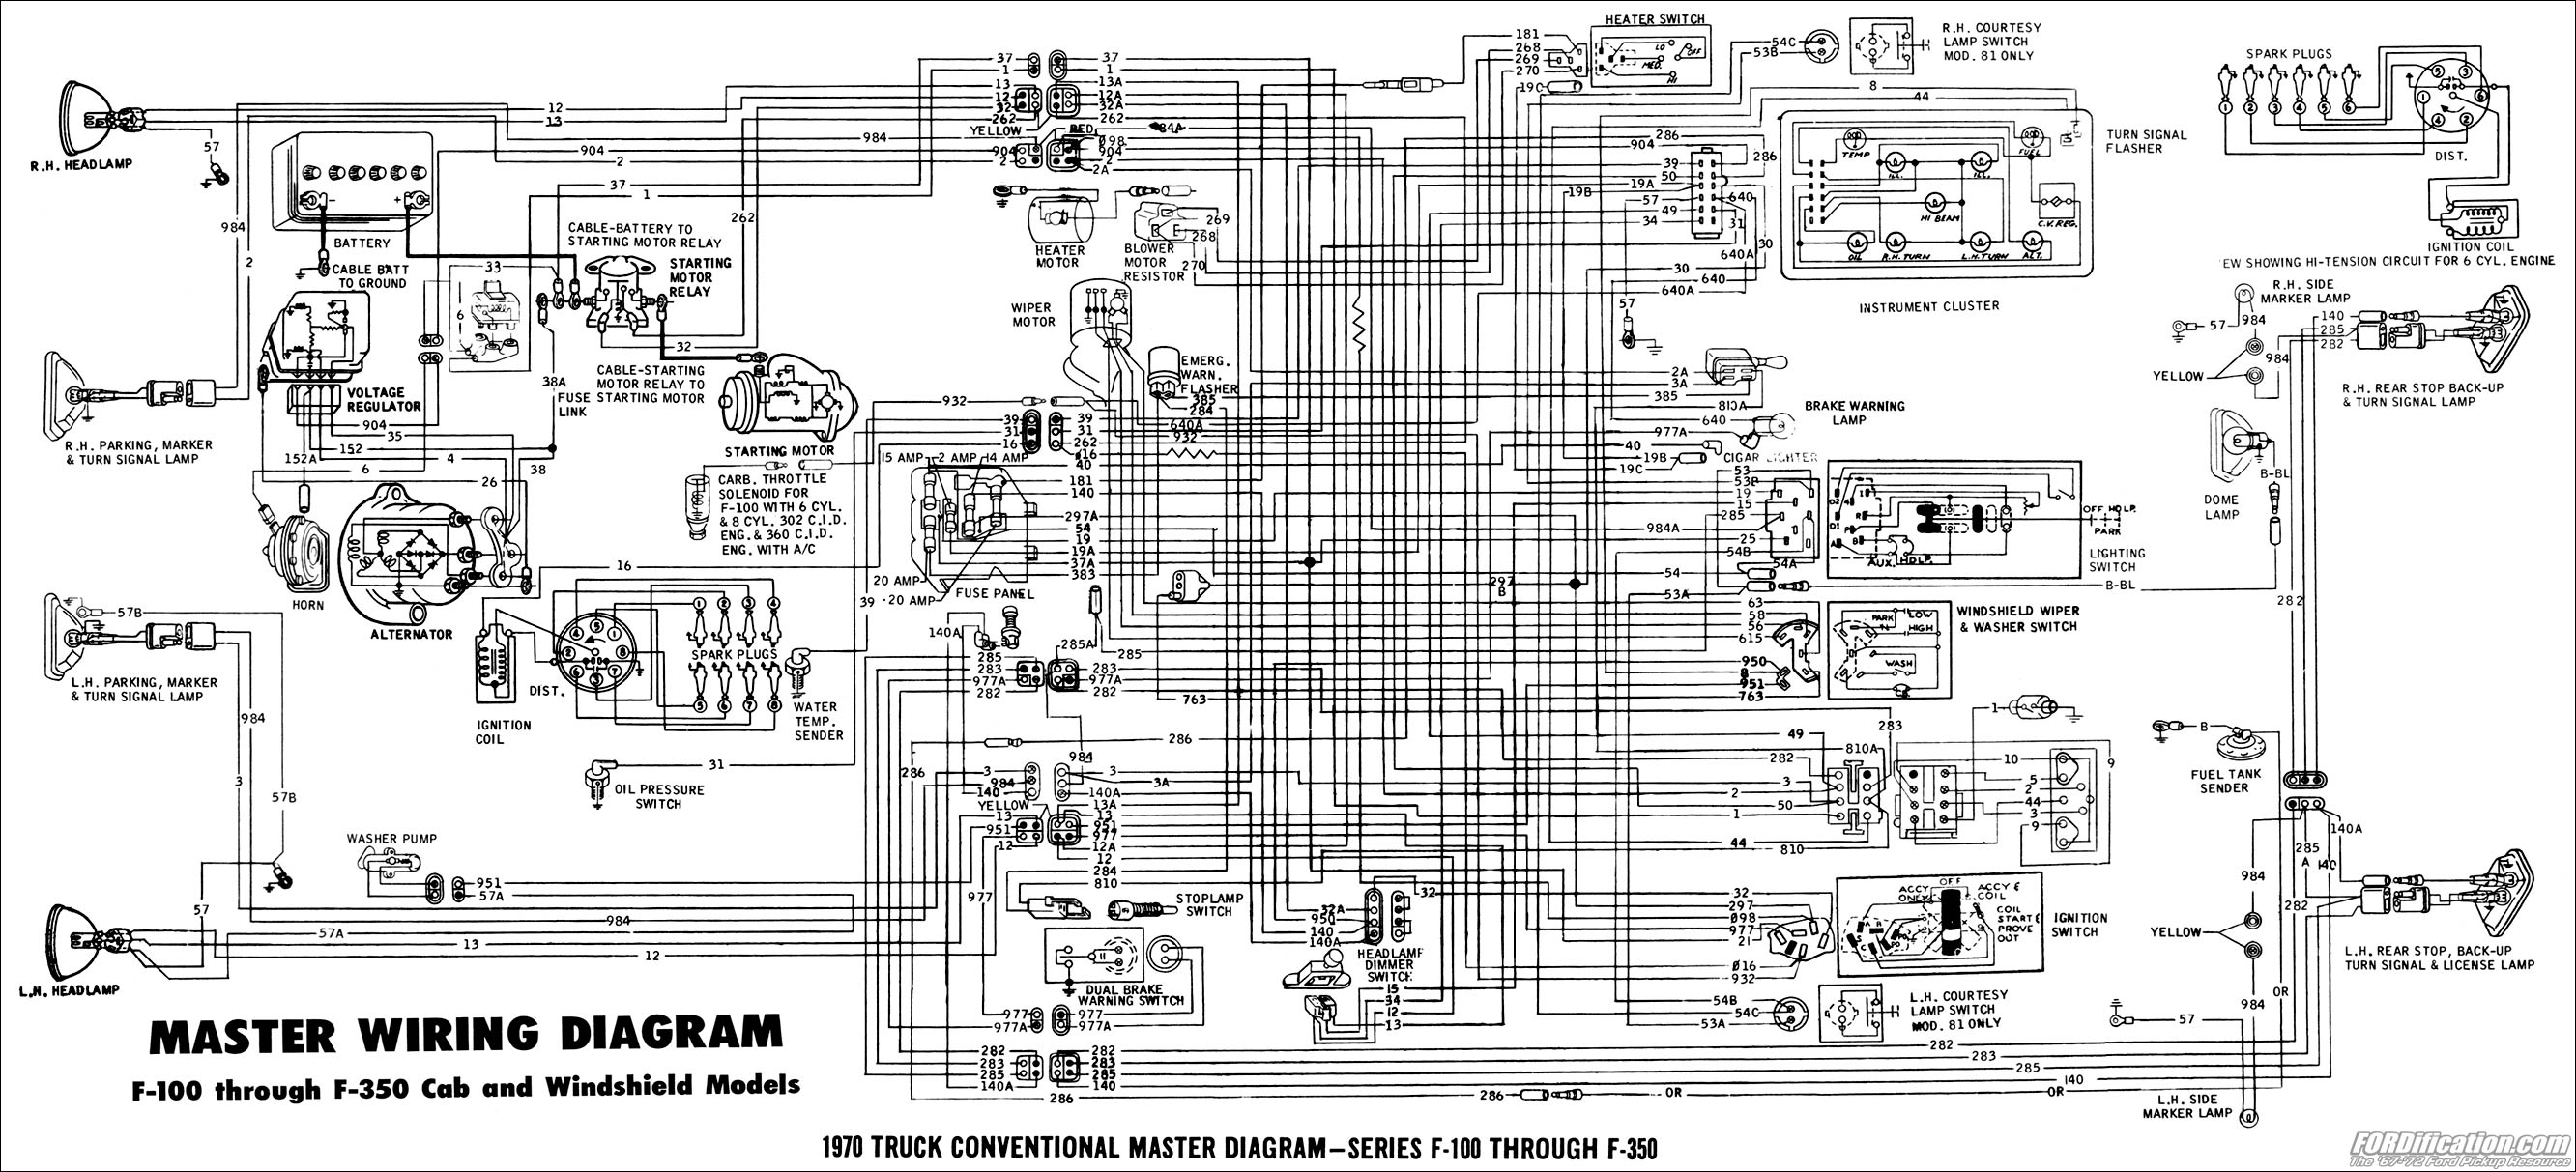 Wiring Diagram 1970 Ford F 250 Opinions About Wiring Diagram \u2022 04 F250 Wiring  Diagram Wiring Diagram For Ford F250